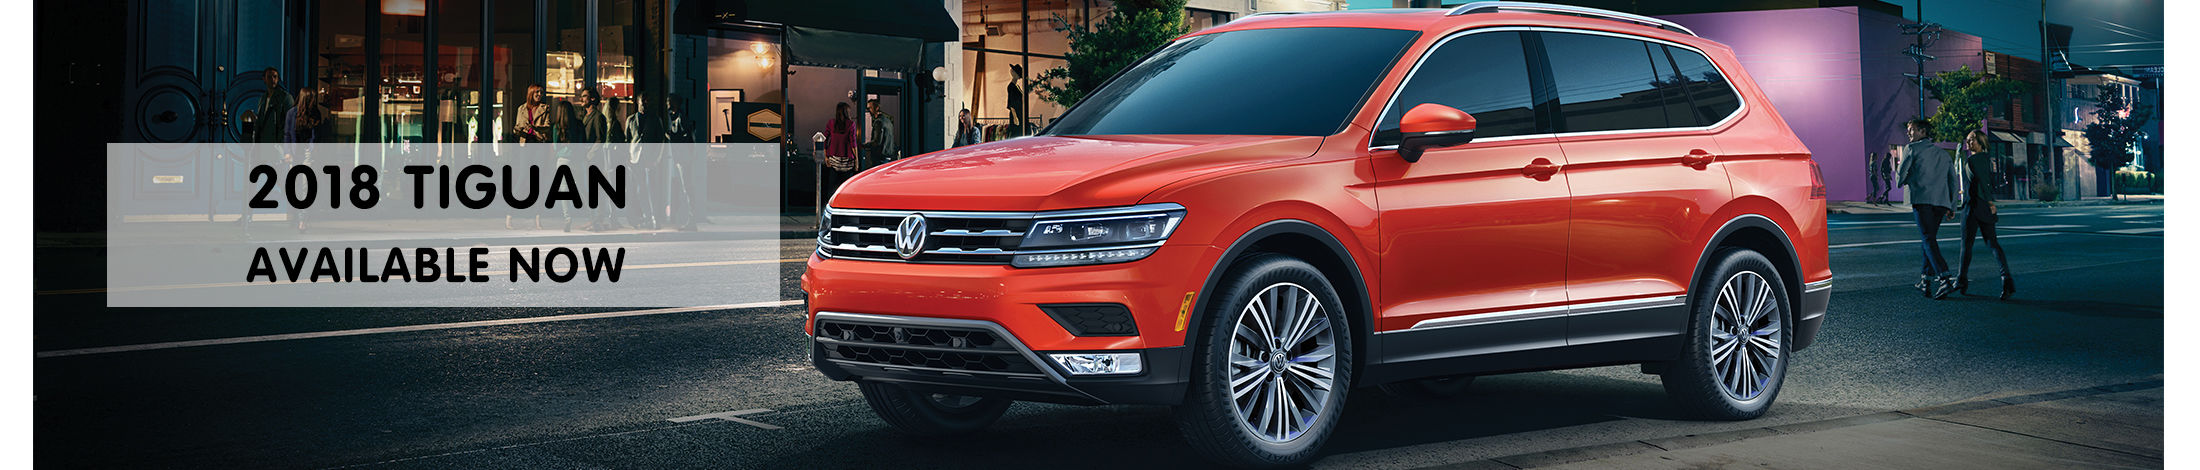 The All New Tiguan has arrived!